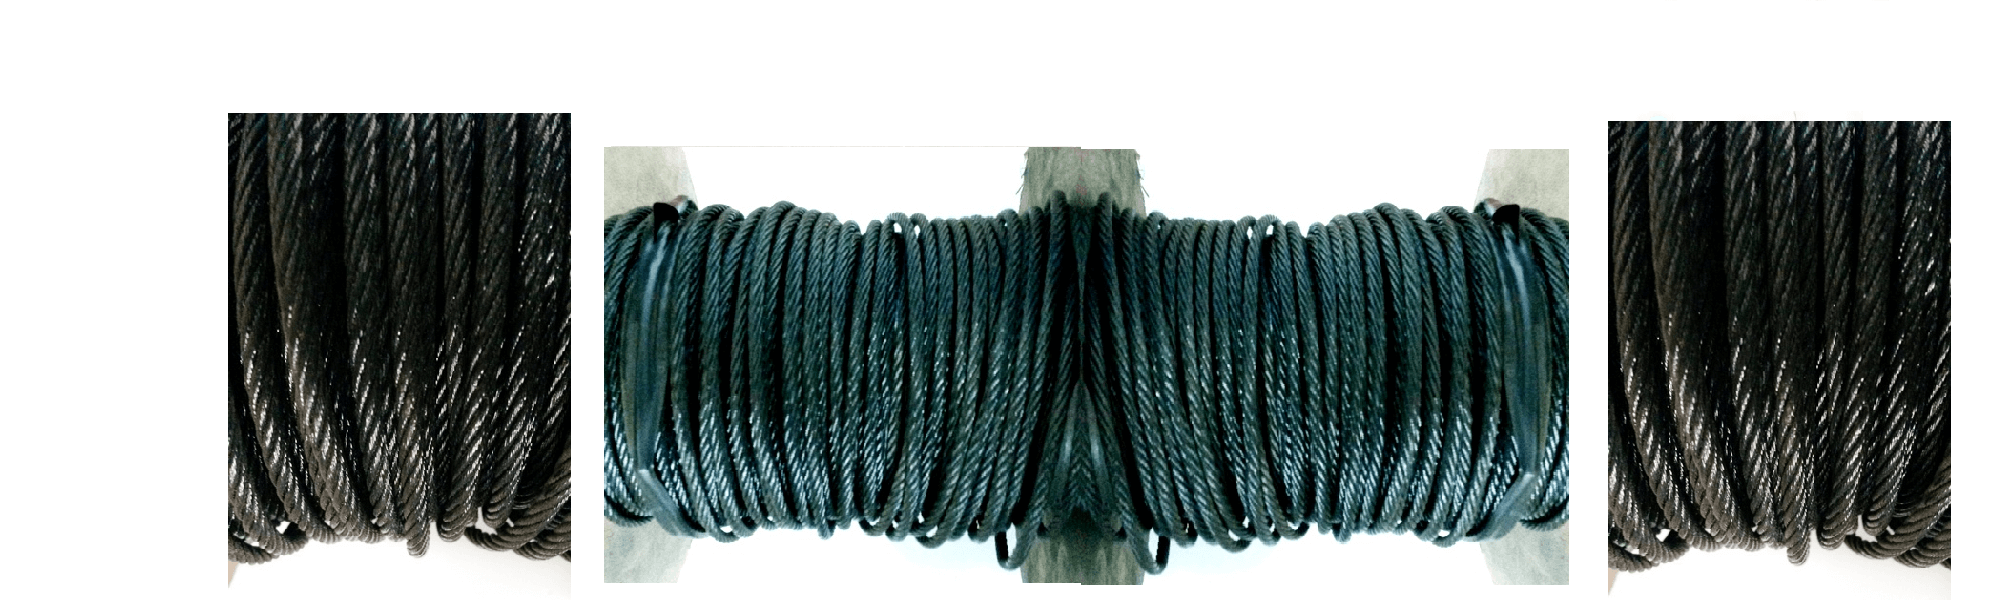 Theatre Cable to Buy Online | Lifting Gear | Rope Services Direct